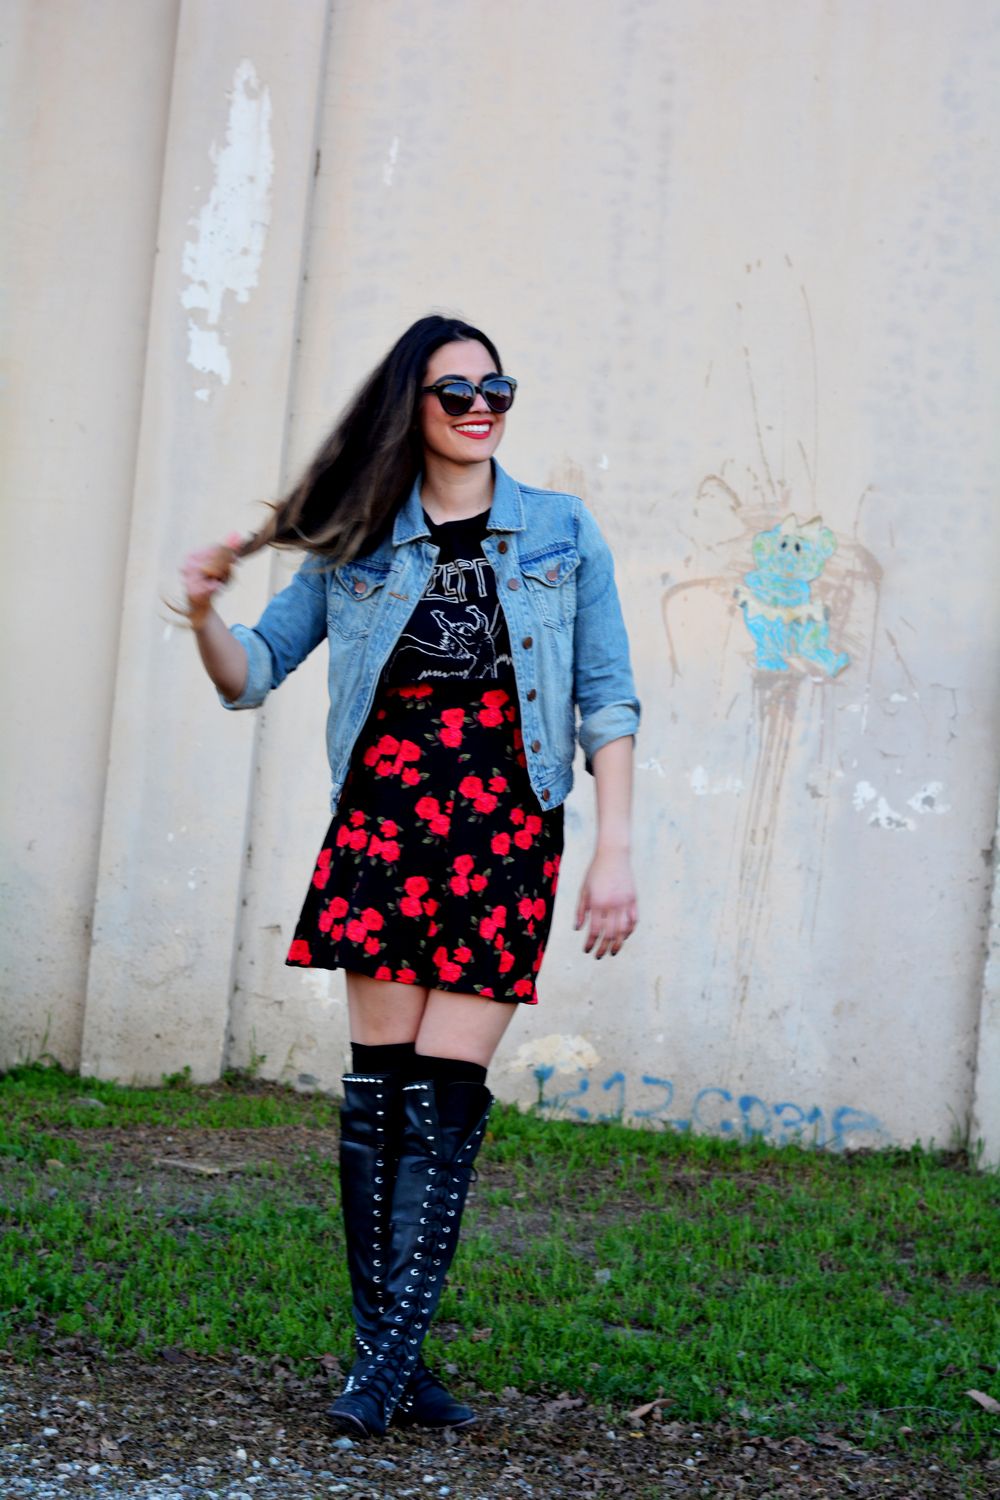 Dress: Kimchi Blue (Urban Outfitters) Tee: Urban Outfitters (Cropped by yours truly) Jacket: Quicksilver (Nordstrom) Boots: Jeffrey Campbell (Free People) Sunglasses: Karen Walker No 1 (Bona Drag) Photo Cred: Zachary Perkins